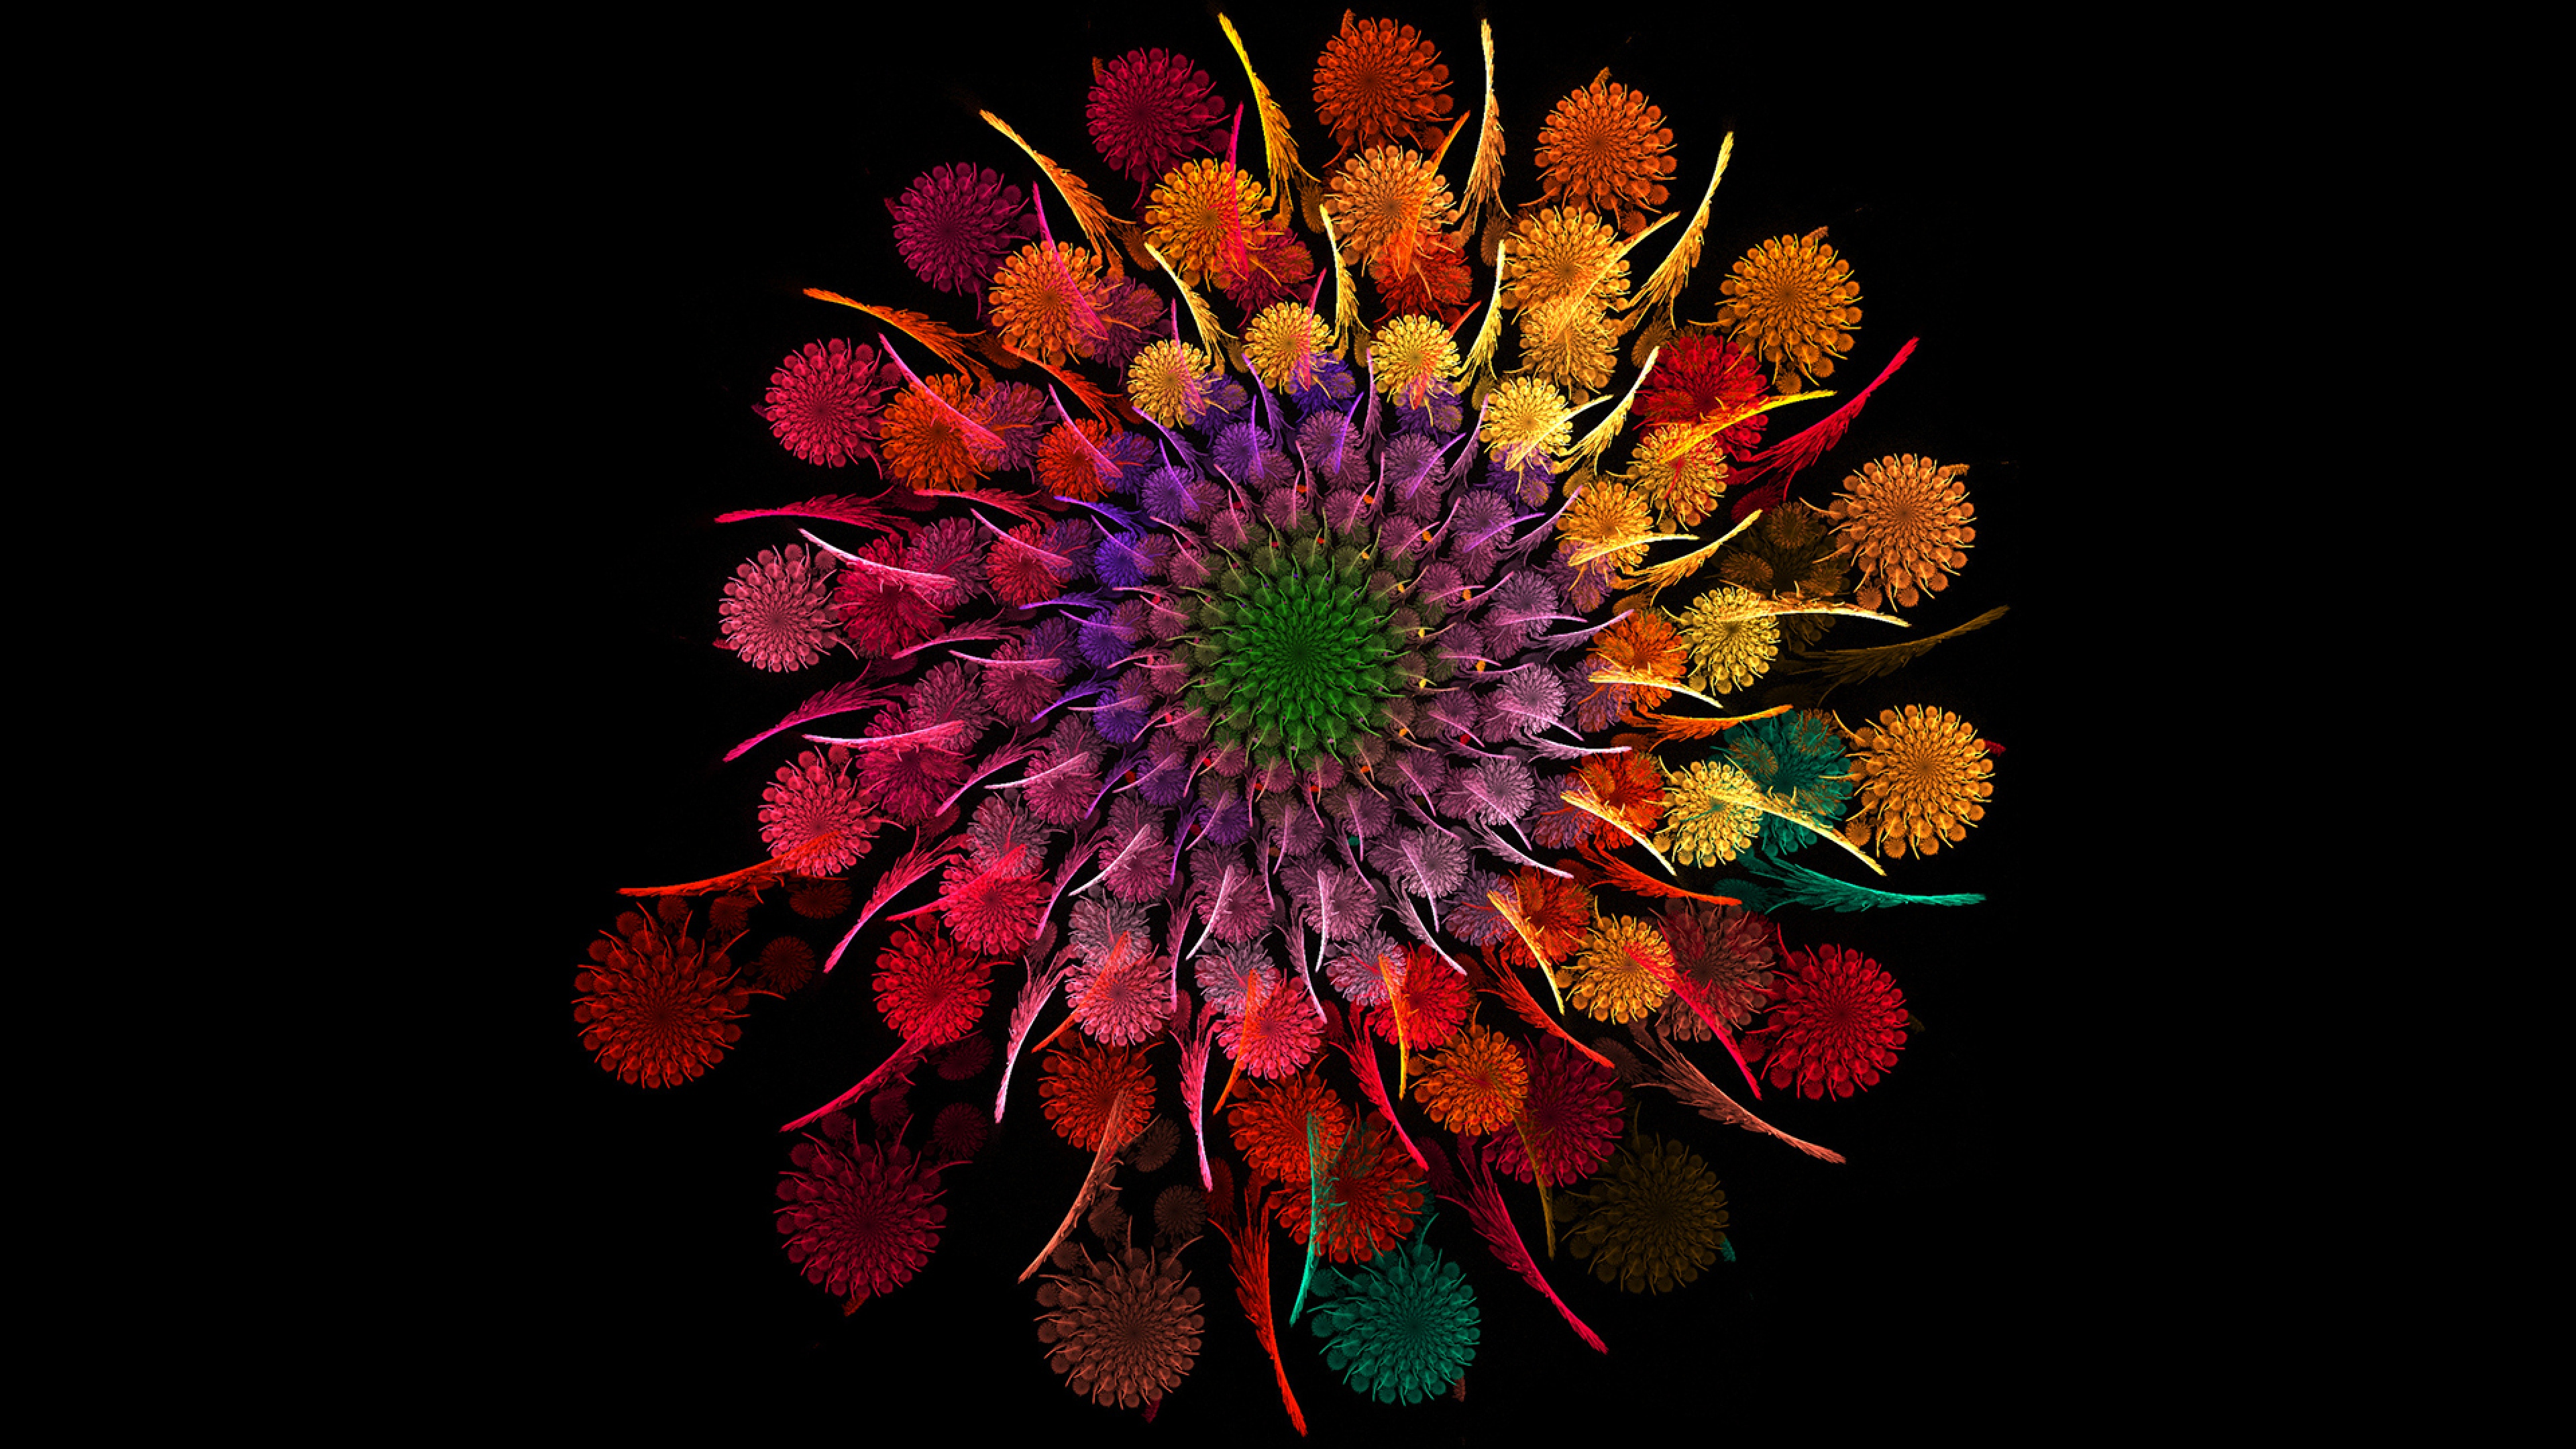 rainbow flower, hd flowers, 4k wallpapers, images, backgrounds